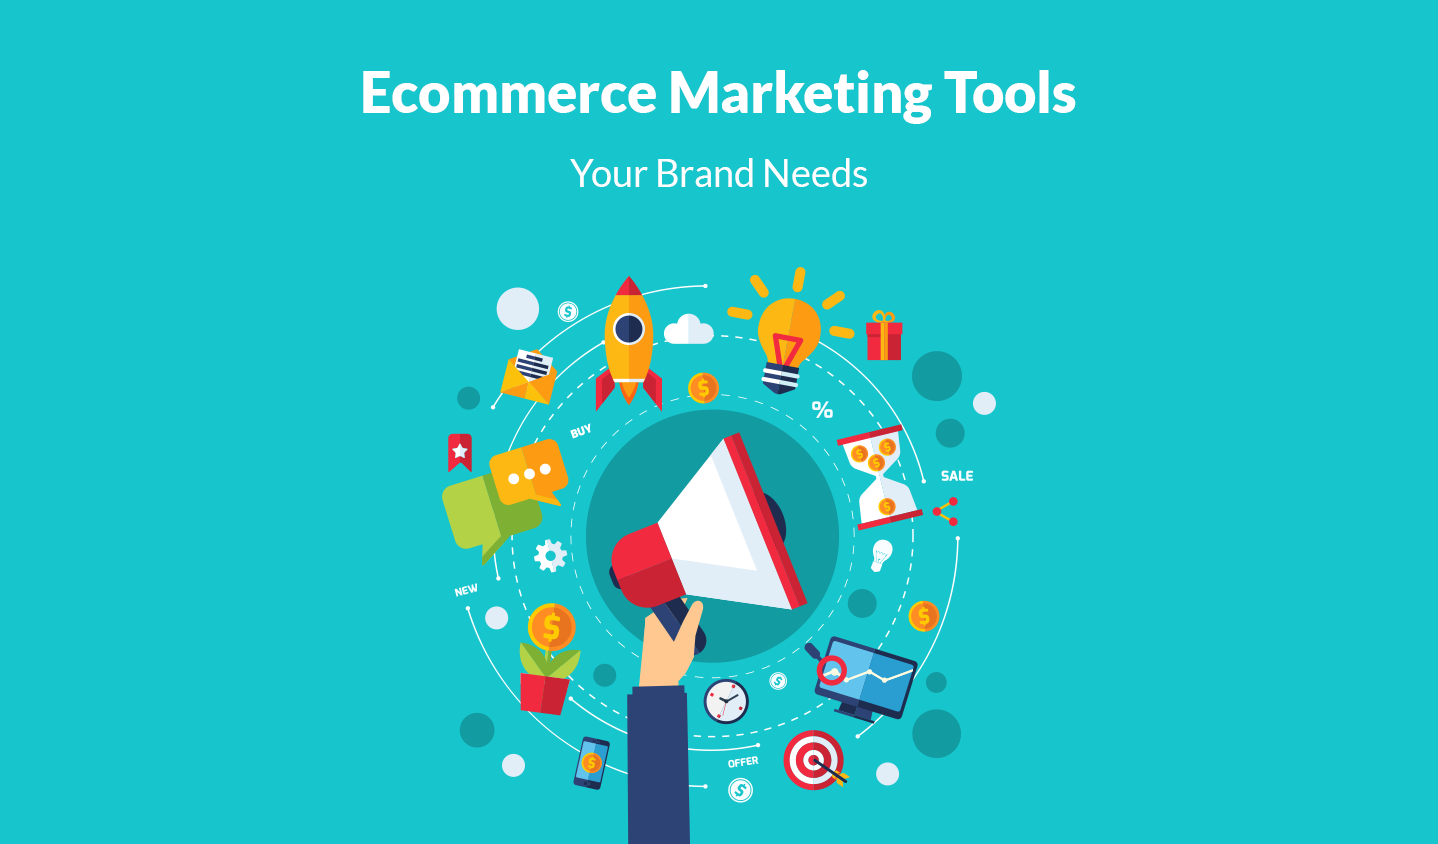 Ecommerce Marketing Tools Your Brand Needs